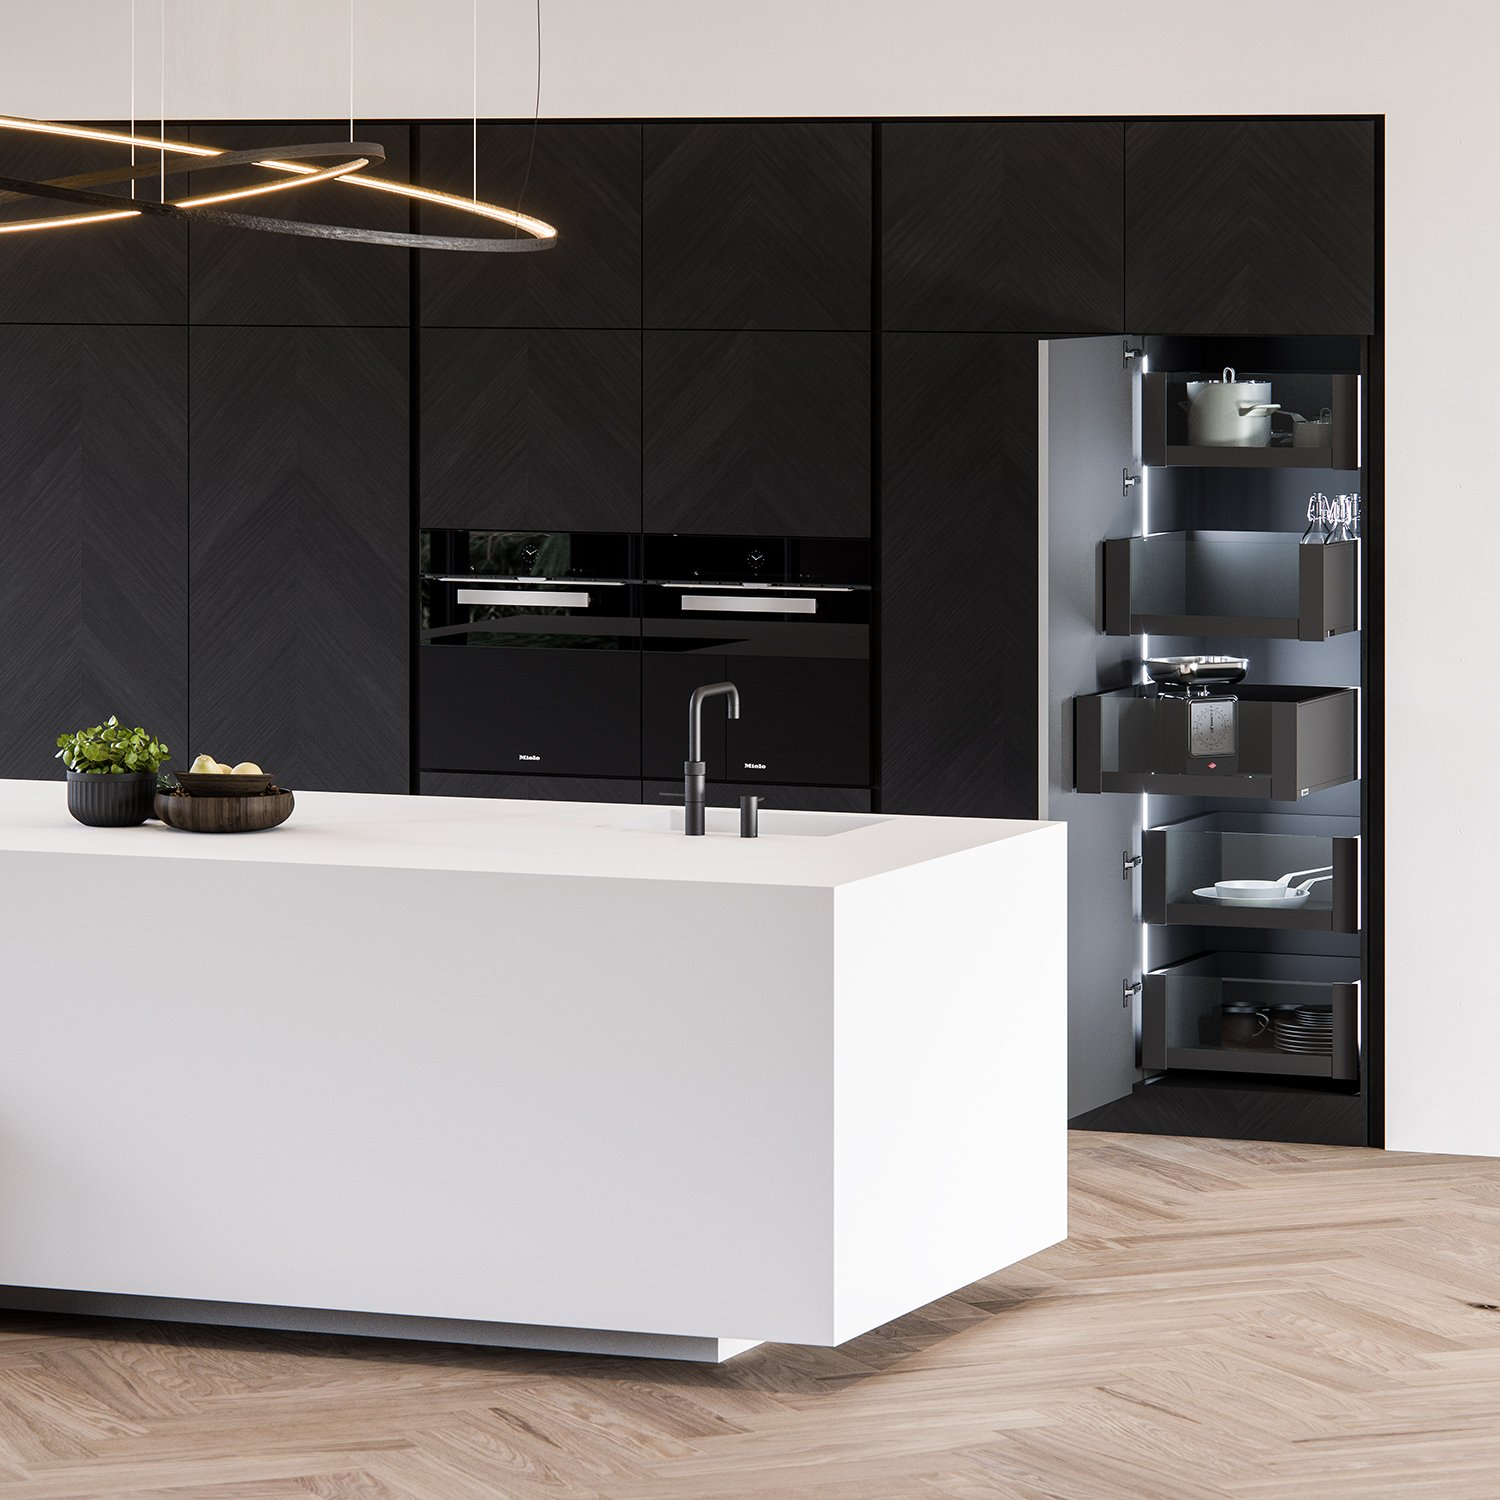 CGI 3D visualization interior, product, Clay kitchen, Miele oven